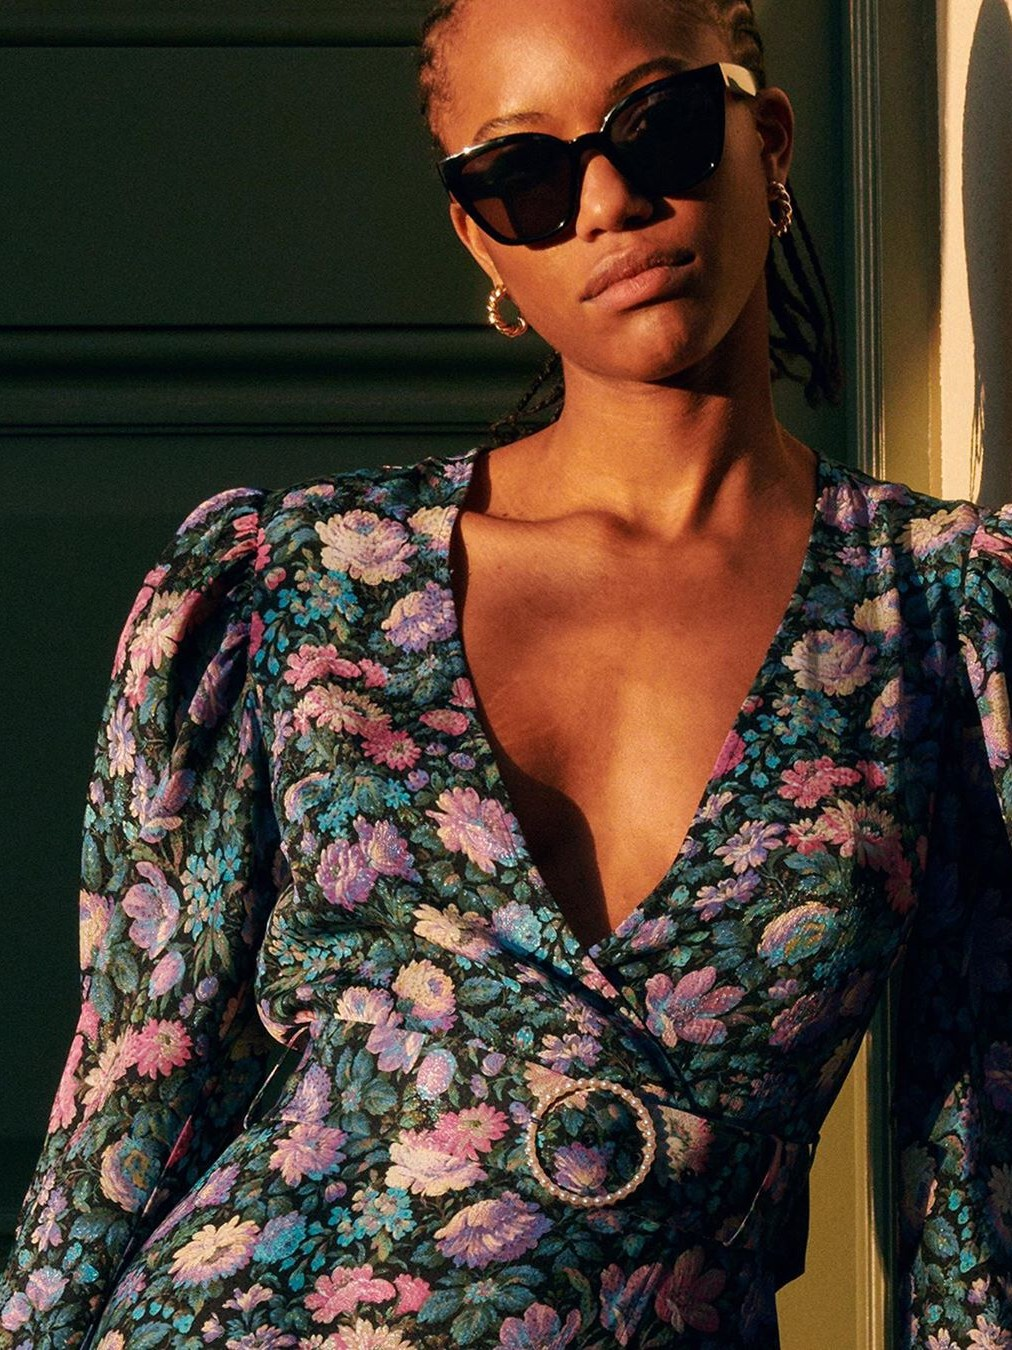 Wrap Dresses For Summer: These Are The Most Coveted